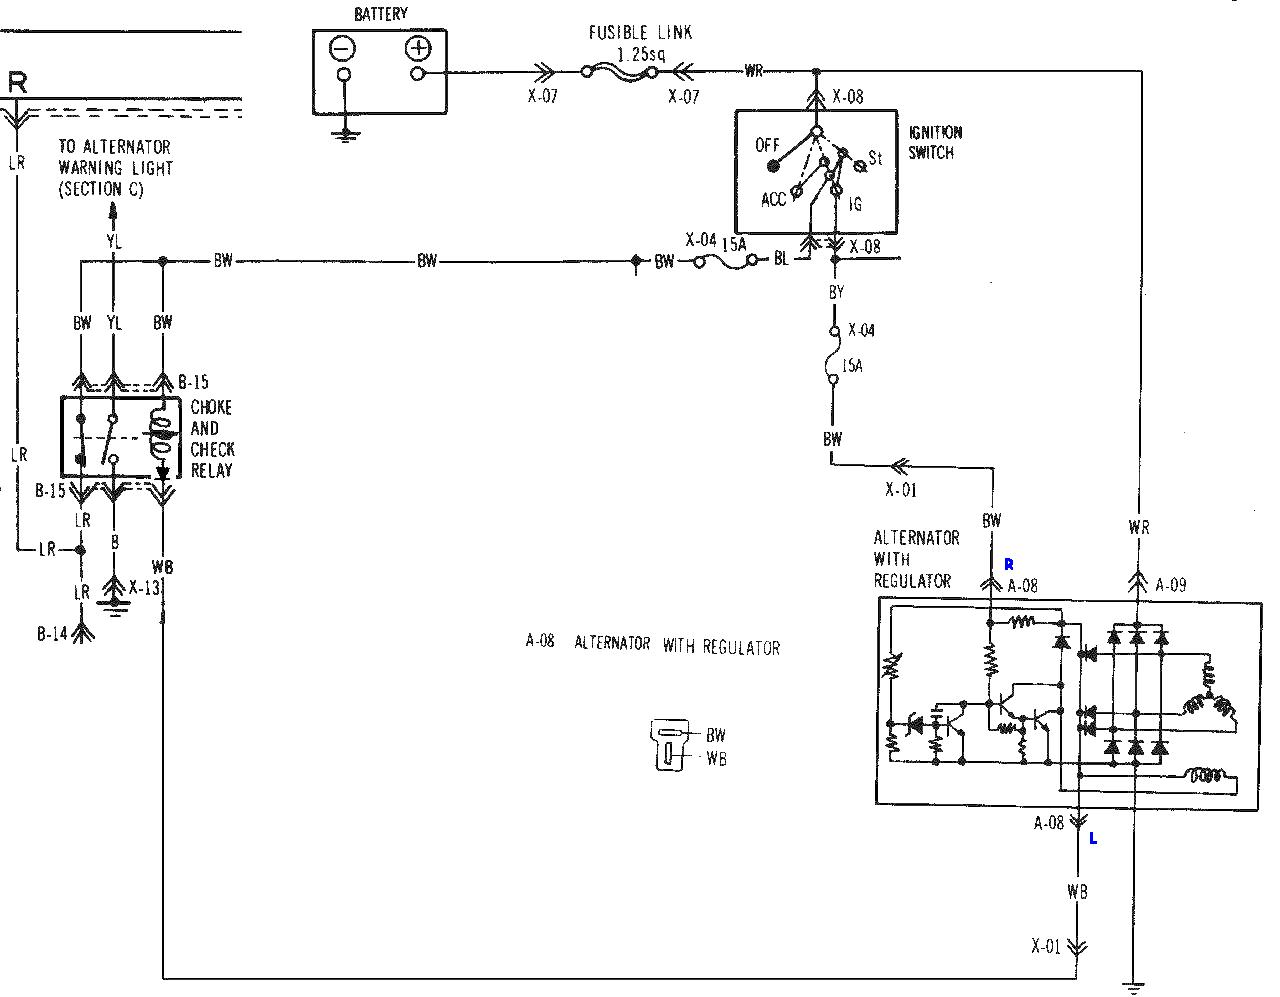 hight resolution of rx7 wiring diagram pdf schematic diagramrx7 wiring diagram 10 1 fearless wonder de u2022re